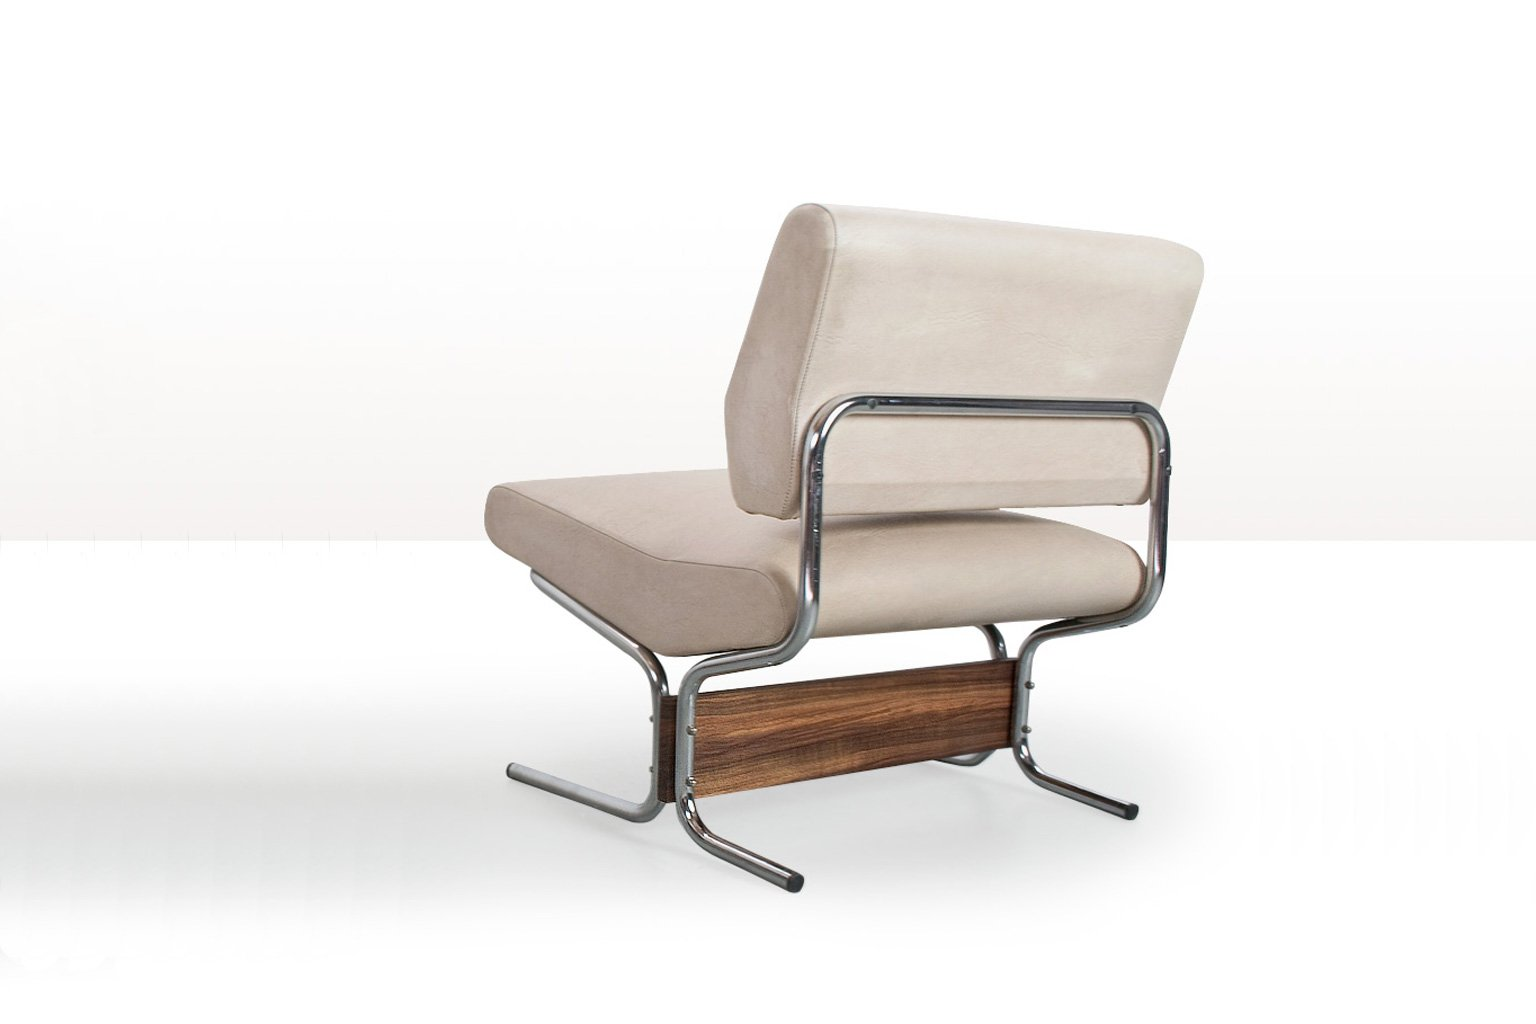 white faux leather lounge chair by pierre guariche for meurop 1960s for sale at pamono. Black Bedroom Furniture Sets. Home Design Ideas